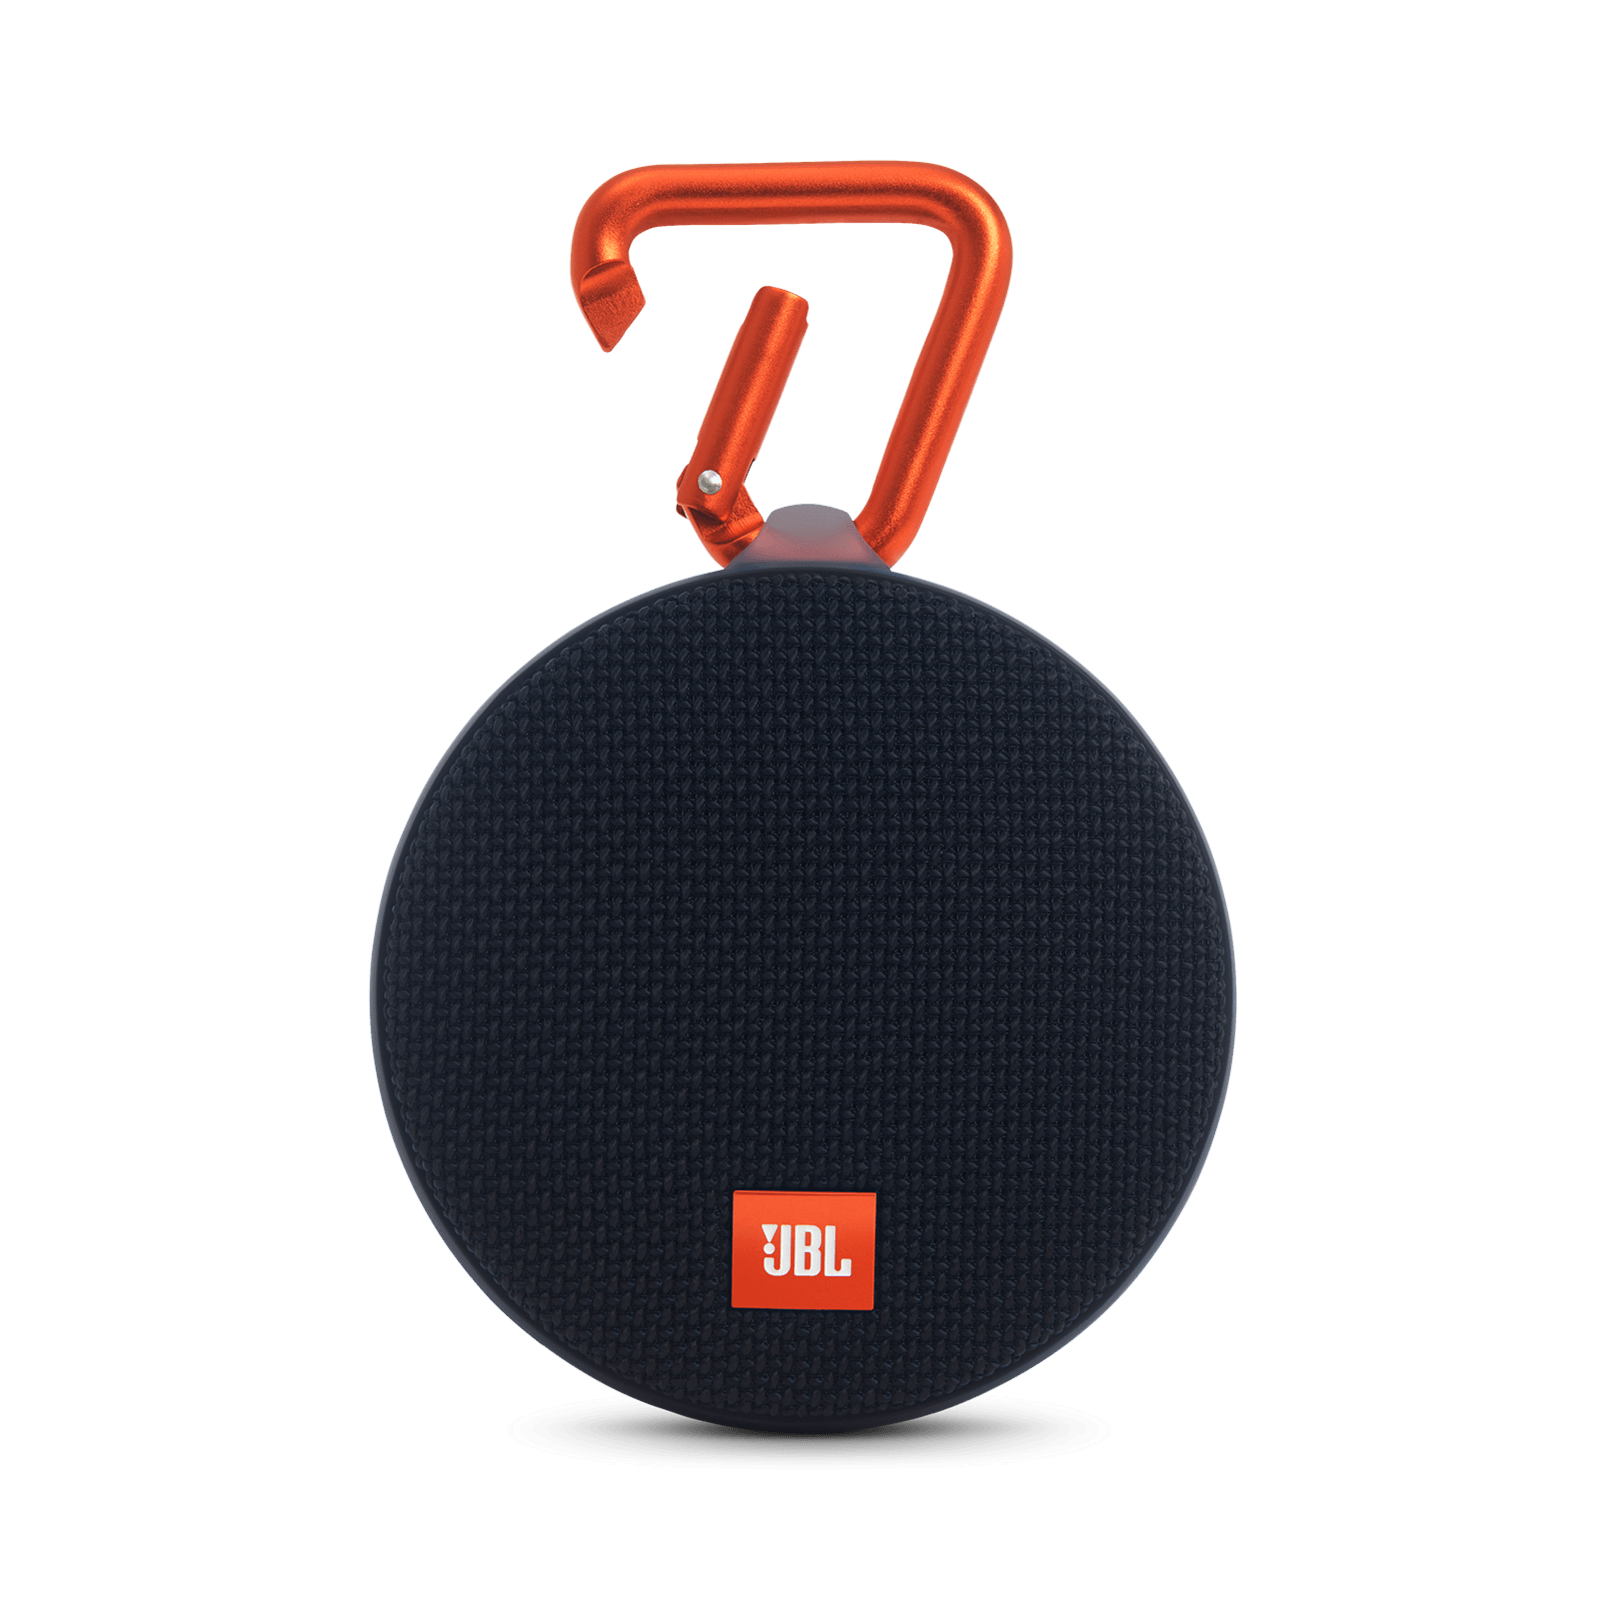 jbl-bluetooth-speakers-6